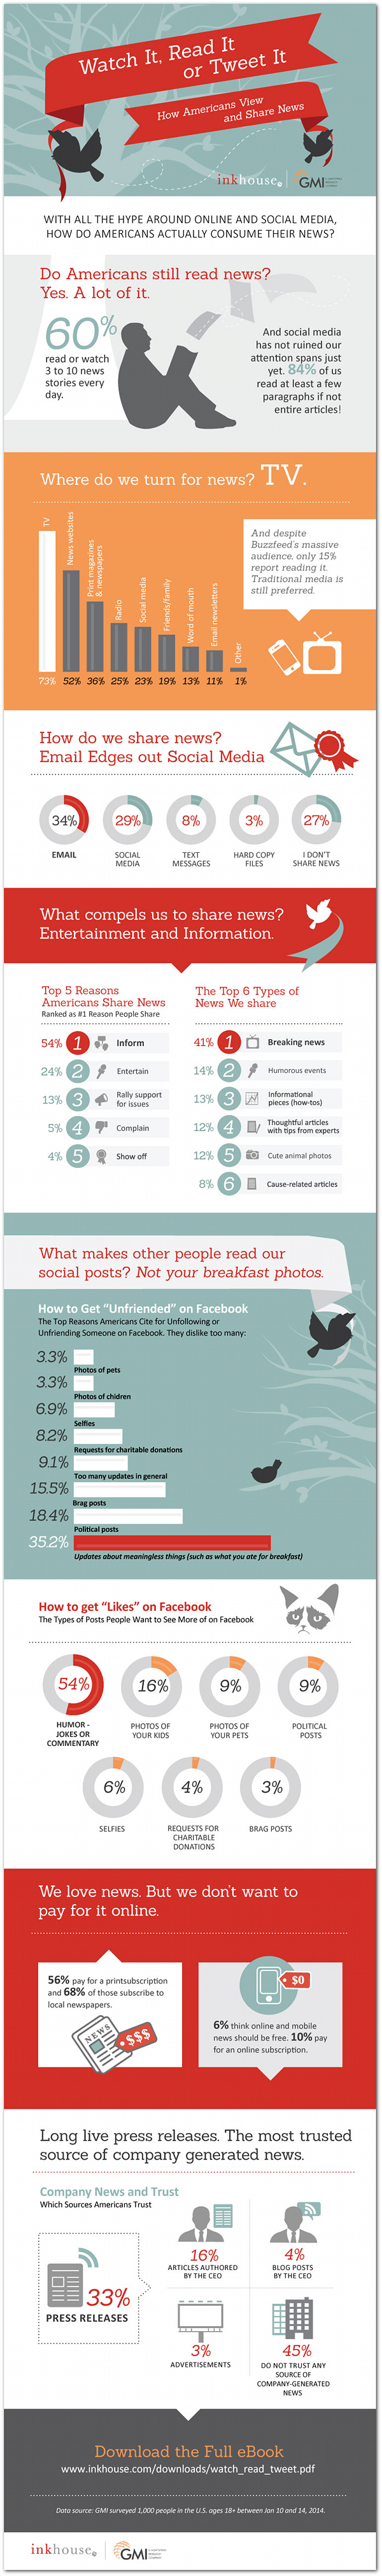 watch_read_tweet_inkhouse-infogrpahic (1)